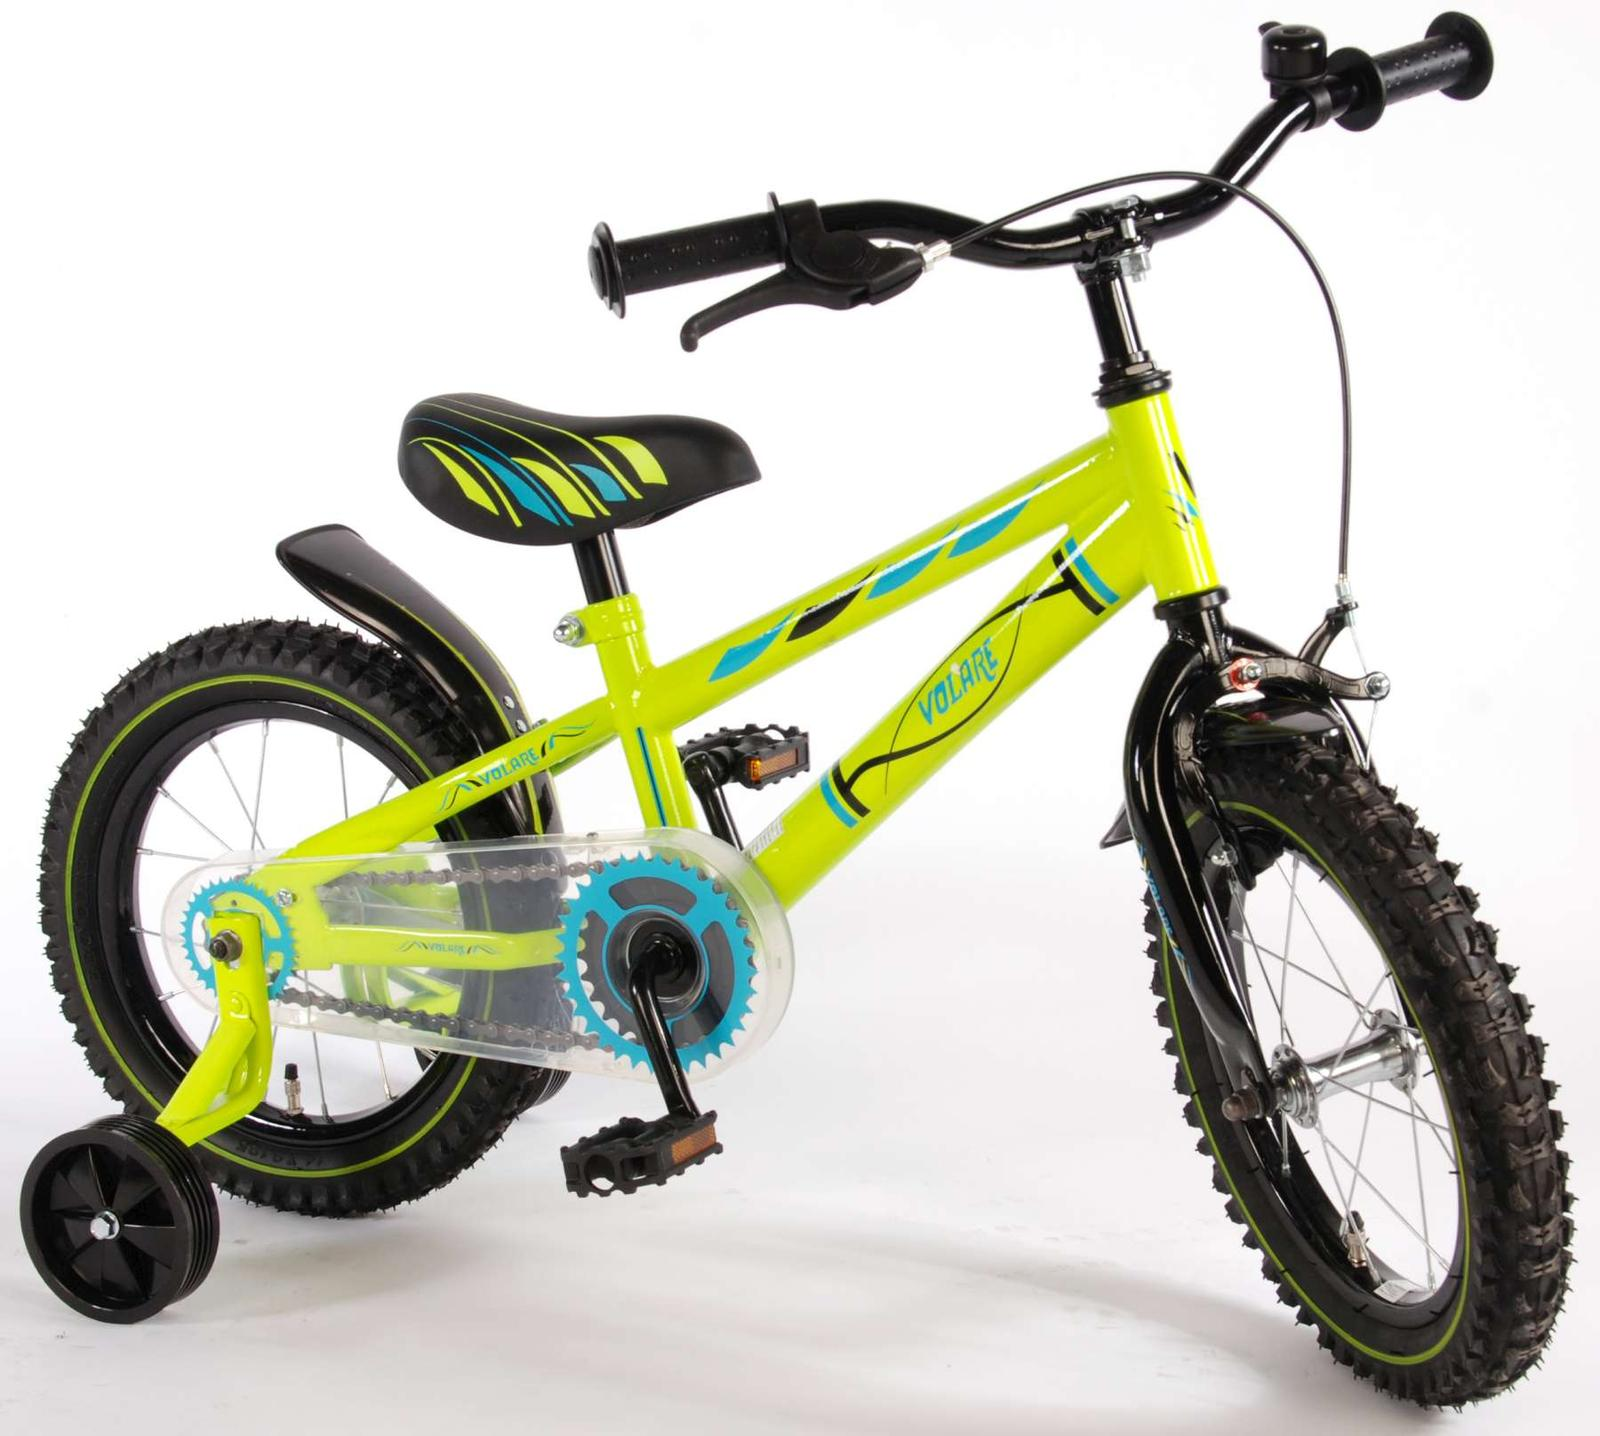 38746bcce0a9 Volare electric green detský bicykel 16